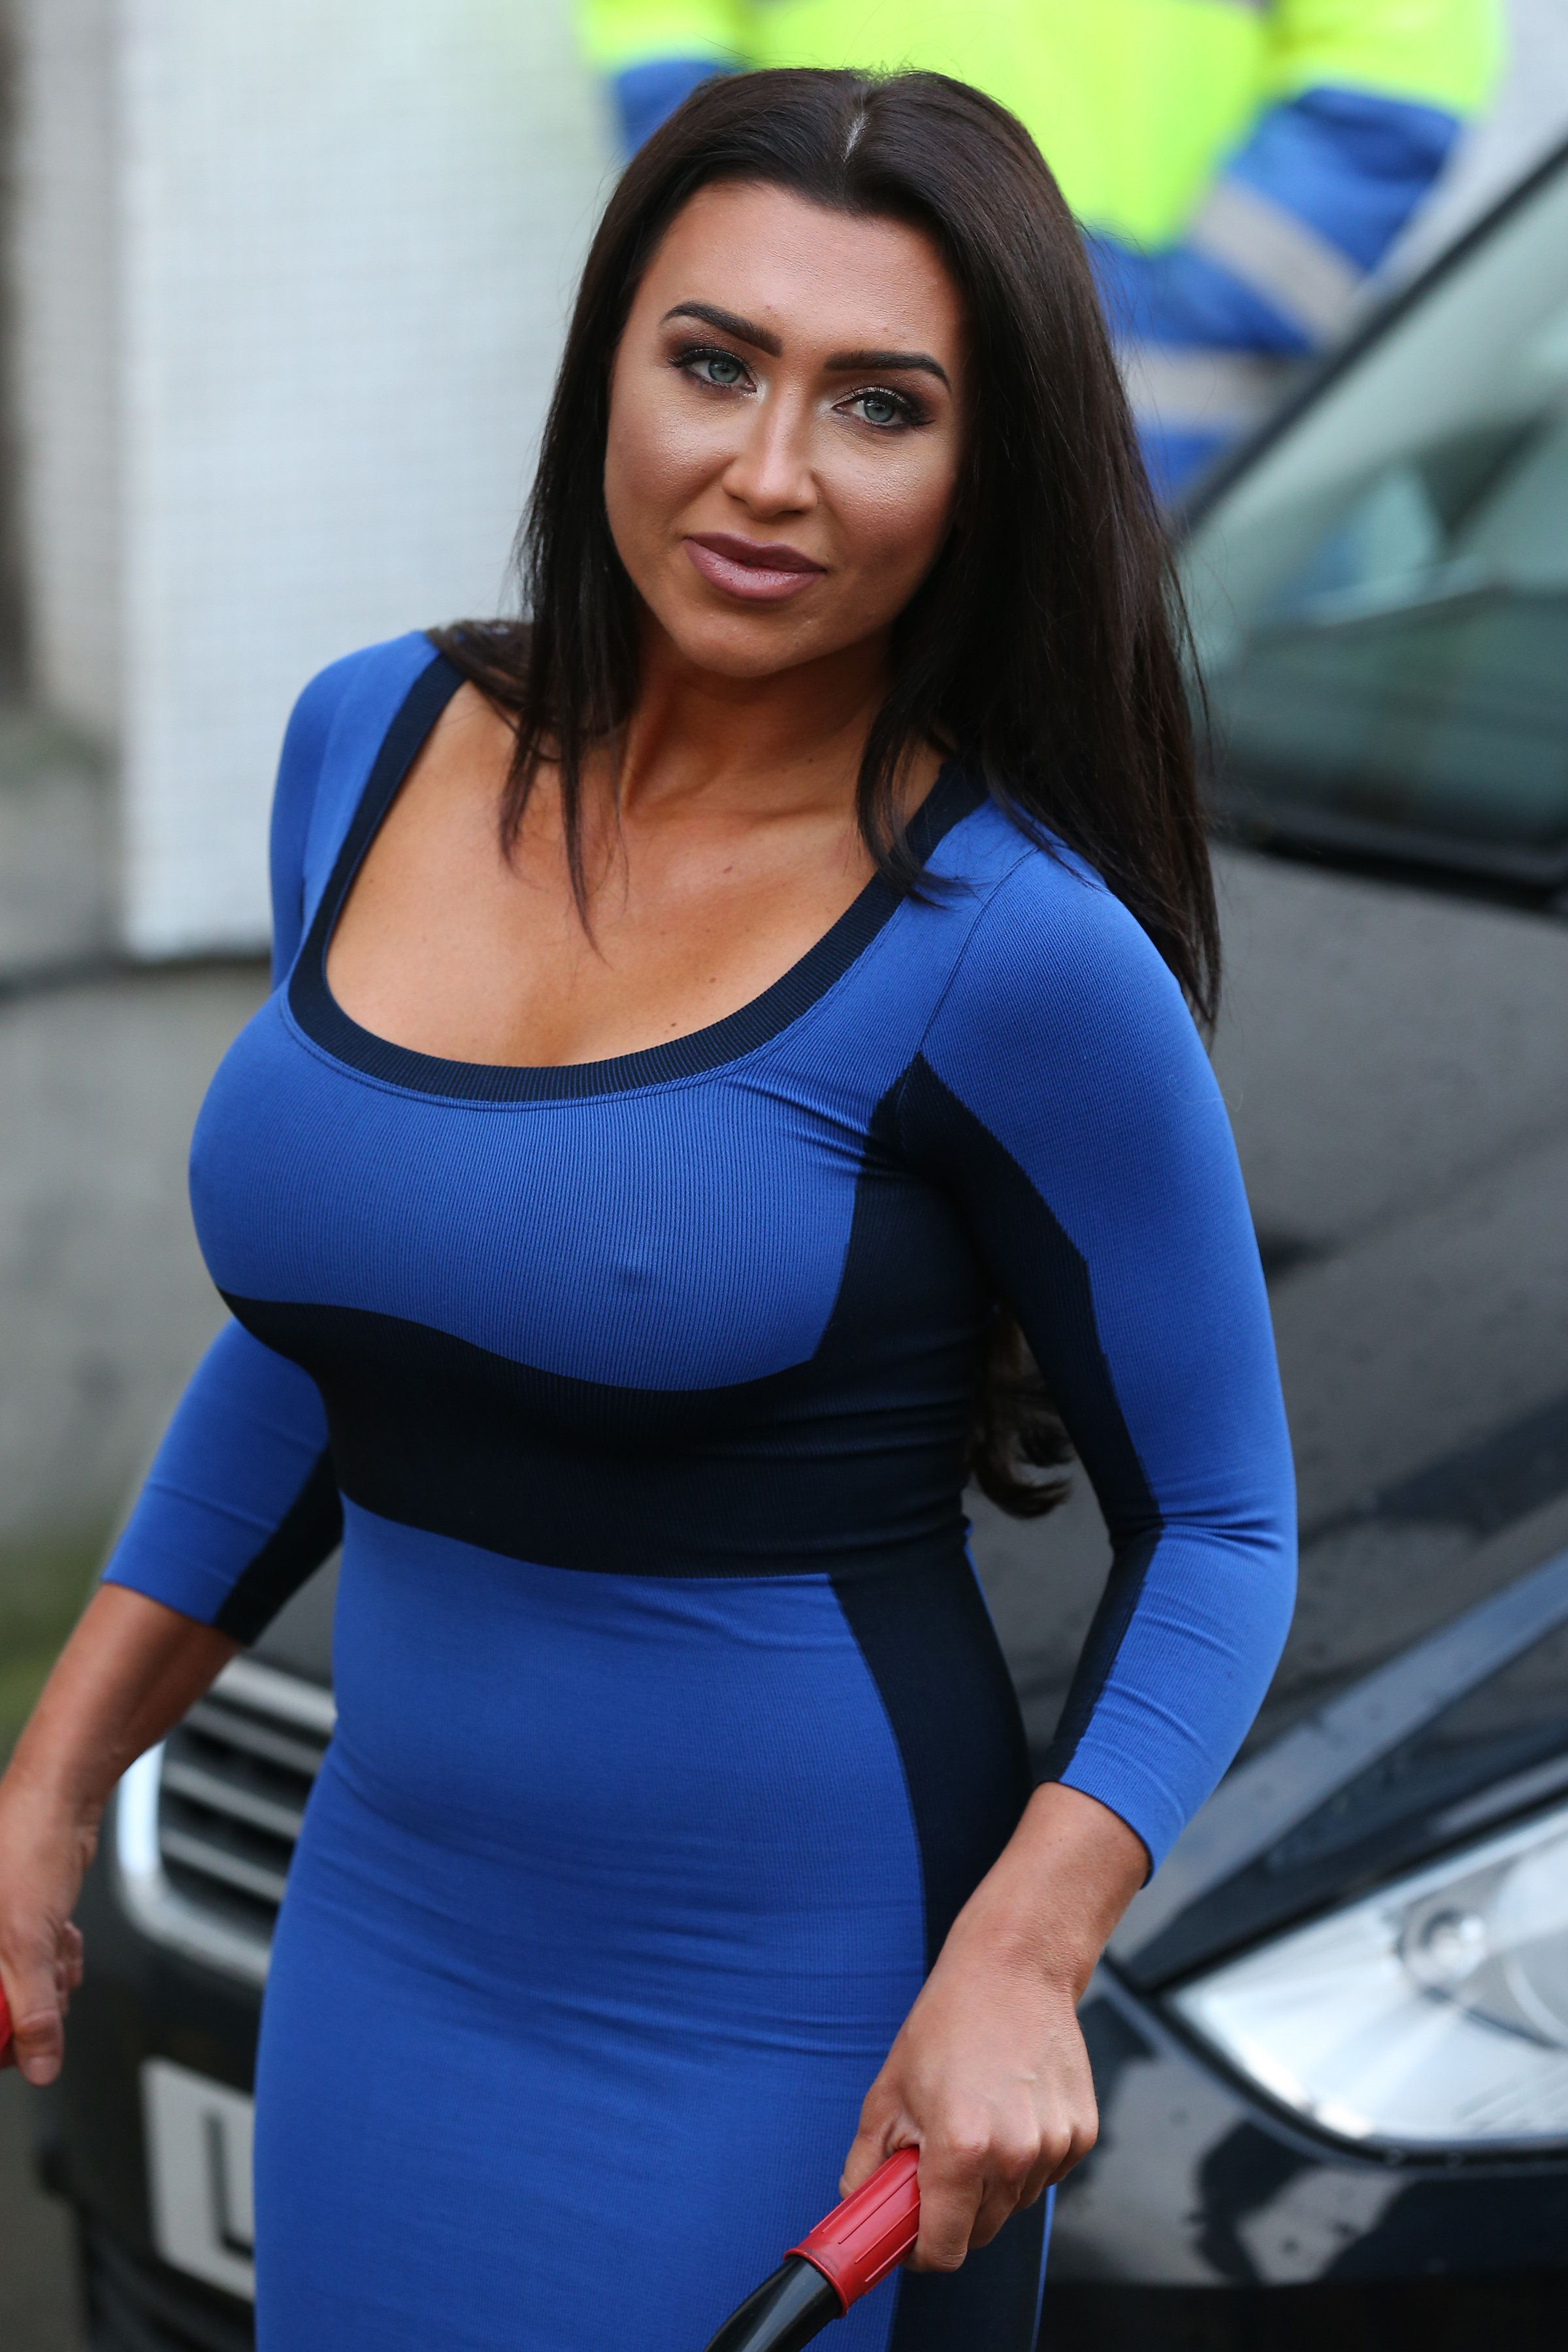 Lauren Goodger 'In Talks' For Reality Show With New Boyfriend, When He's Released From